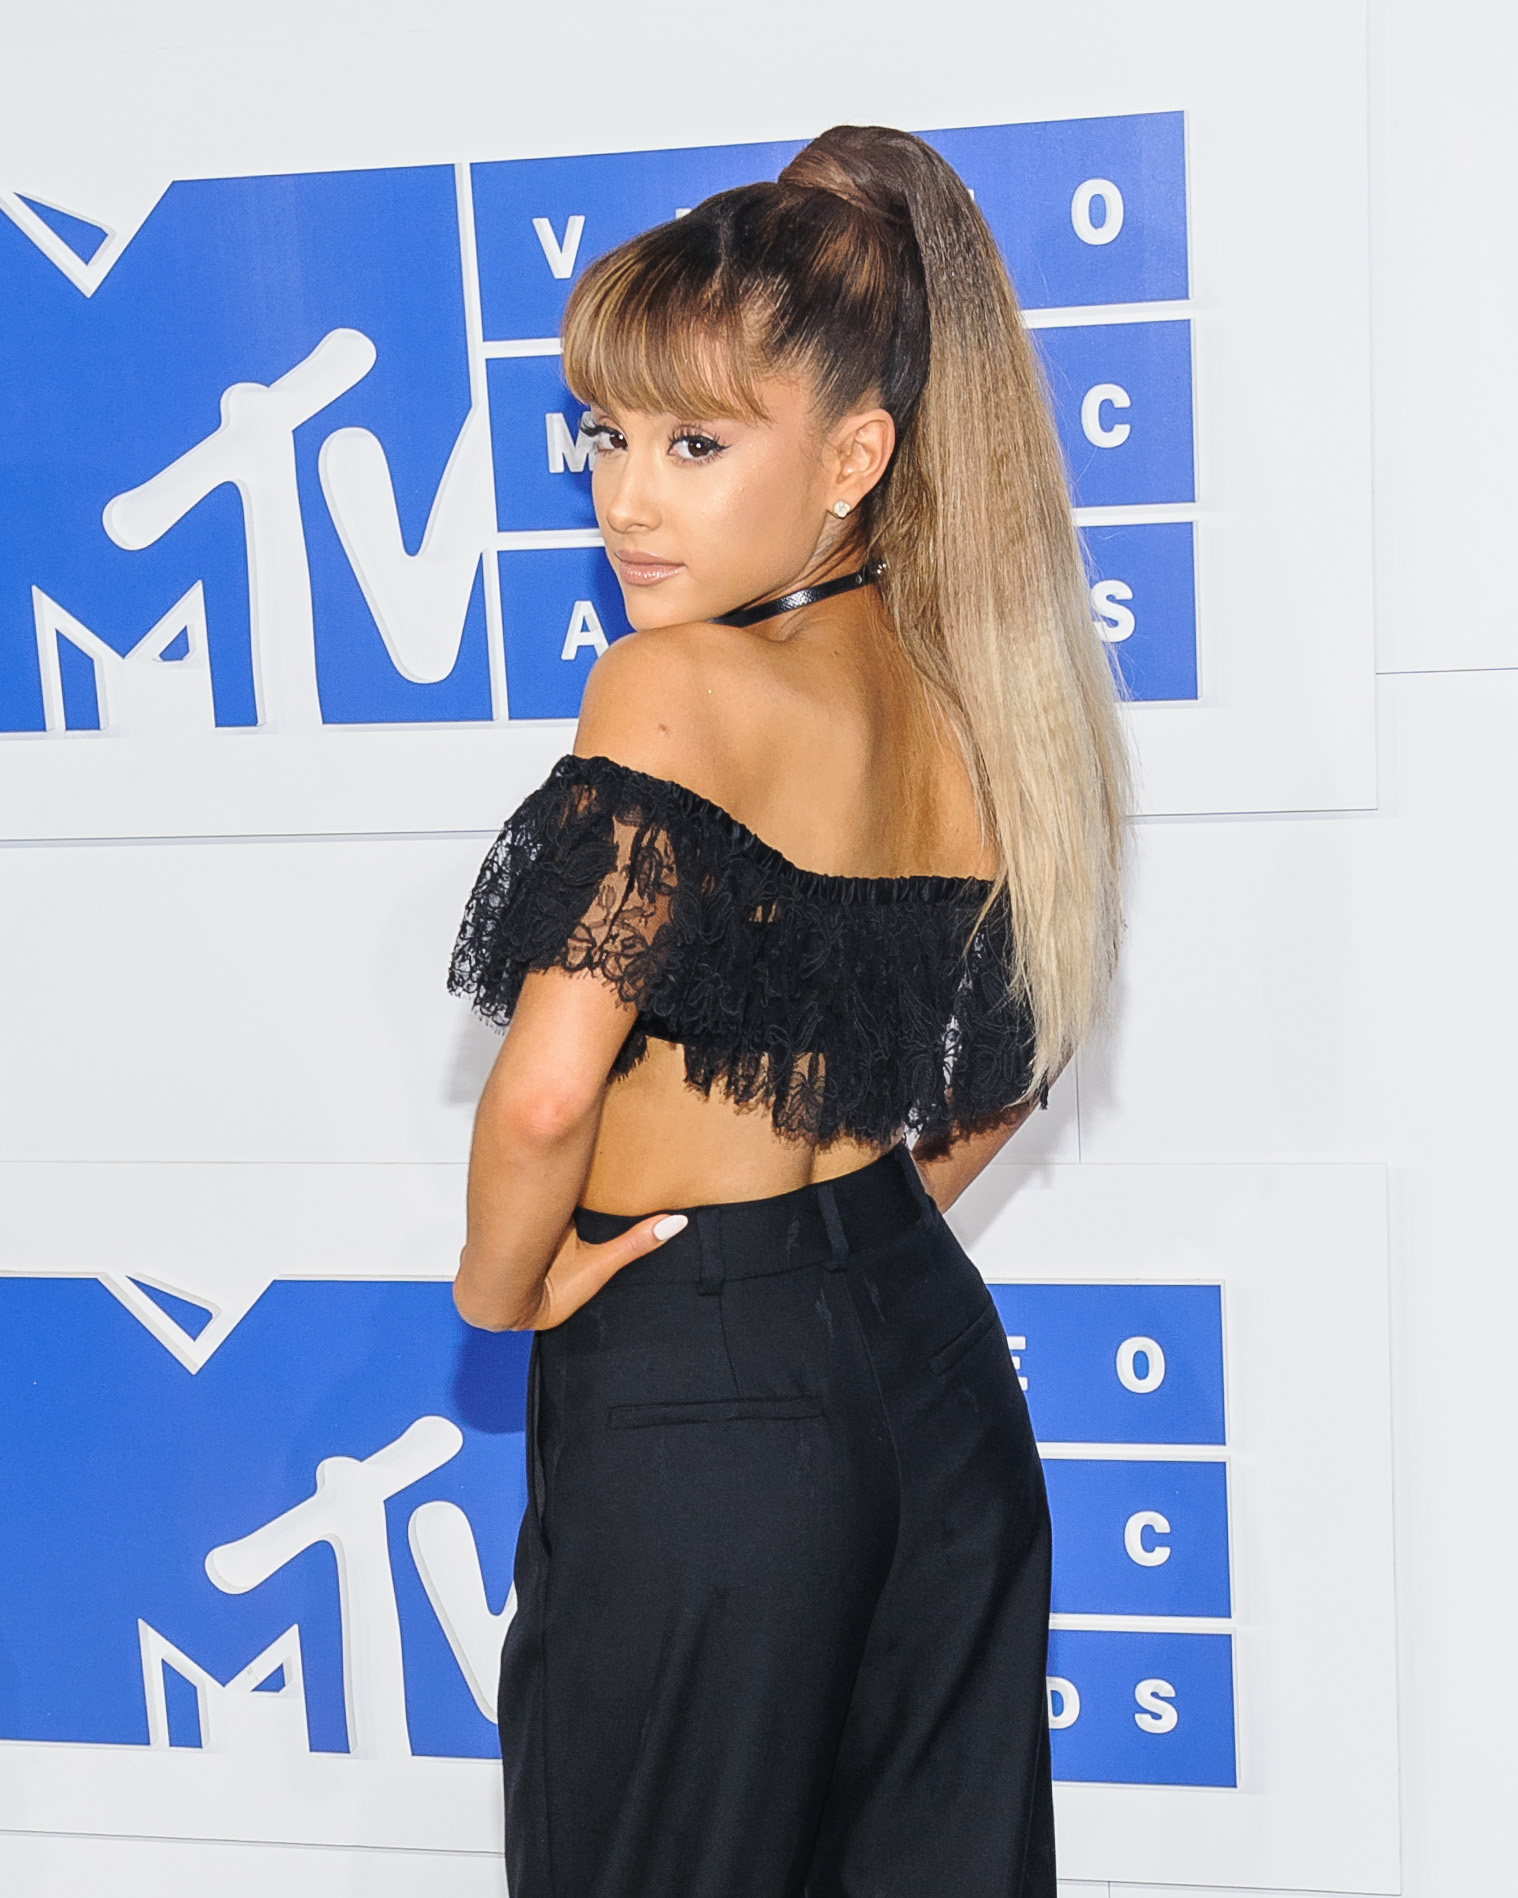 2016 MTV Video Music Awards at Madison Square GardenFeaturing: Ariana GrandeWhere: New York, New York, United StatesWhen: 28 Aug 2016Credit: C.Smith/WENN.com